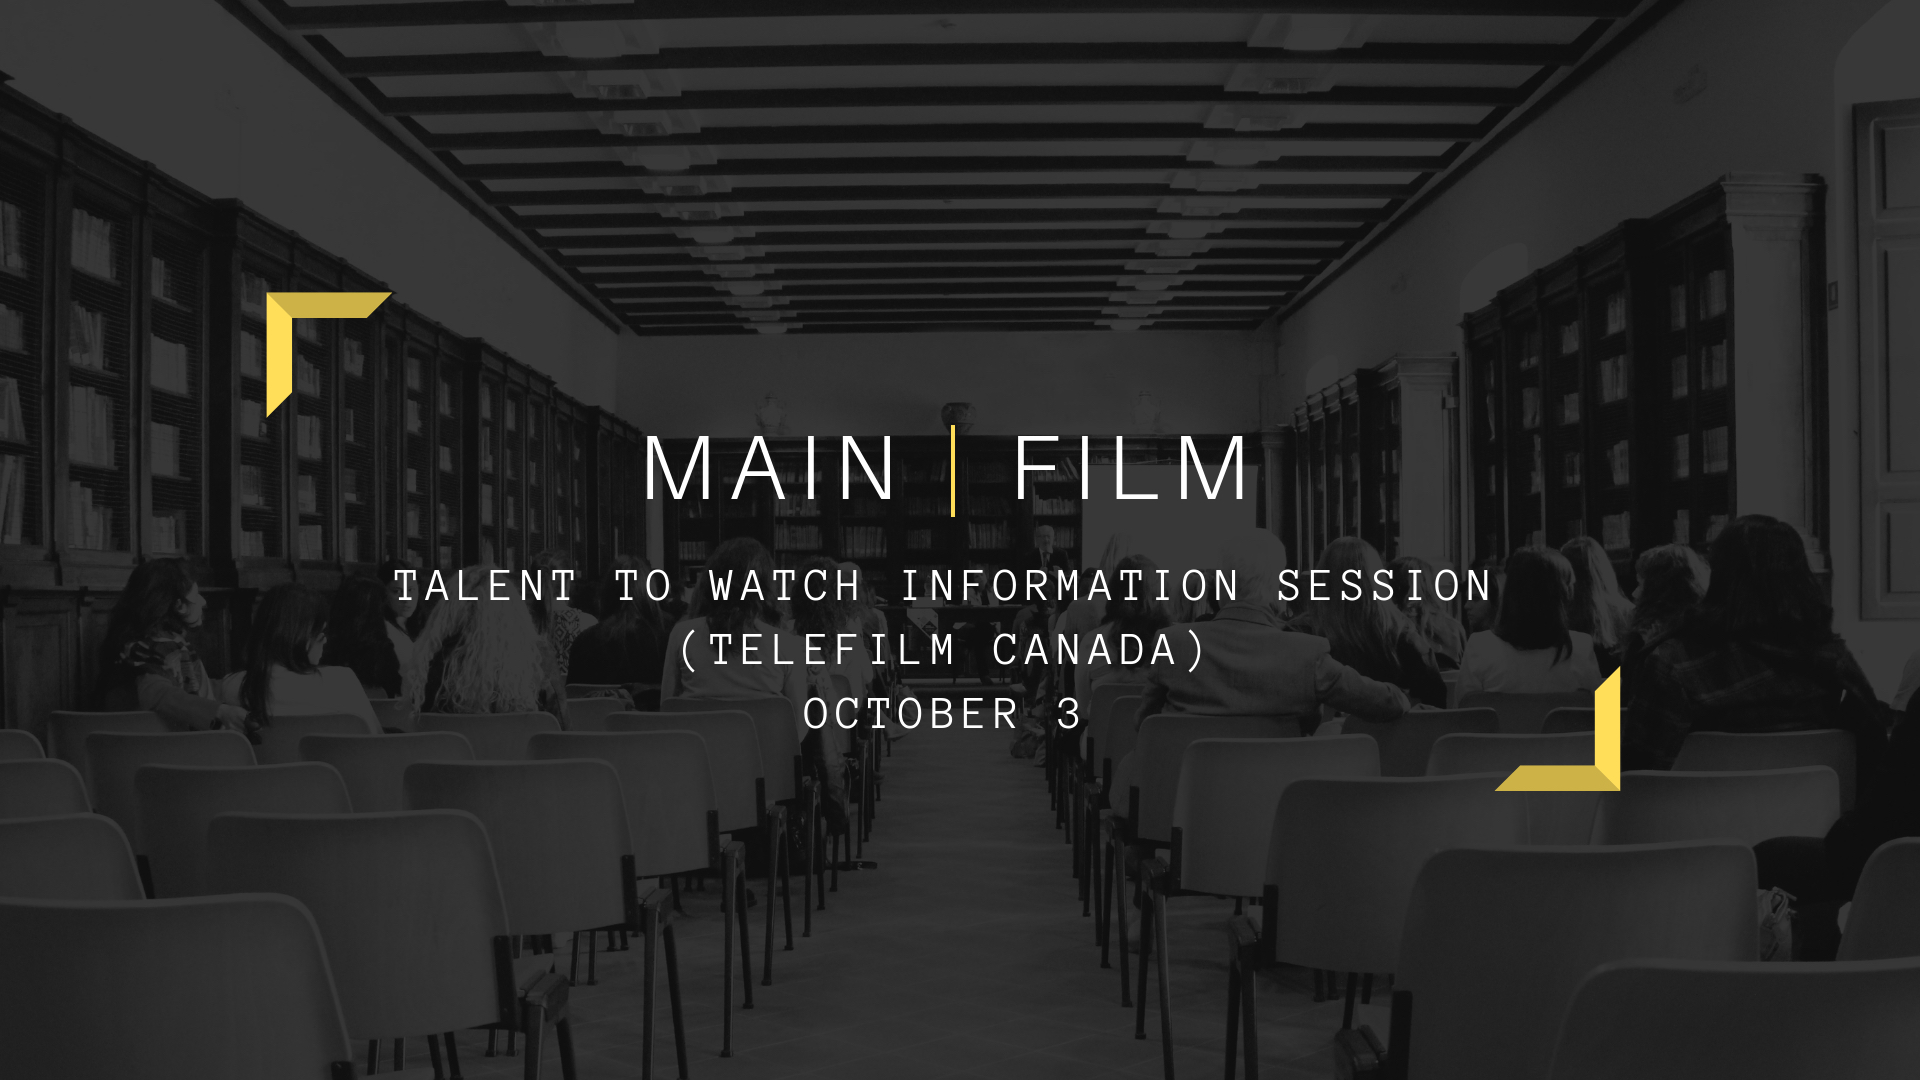 TALENT TO WATCH INFORMATION SESSION (TELEFILM CANADA)